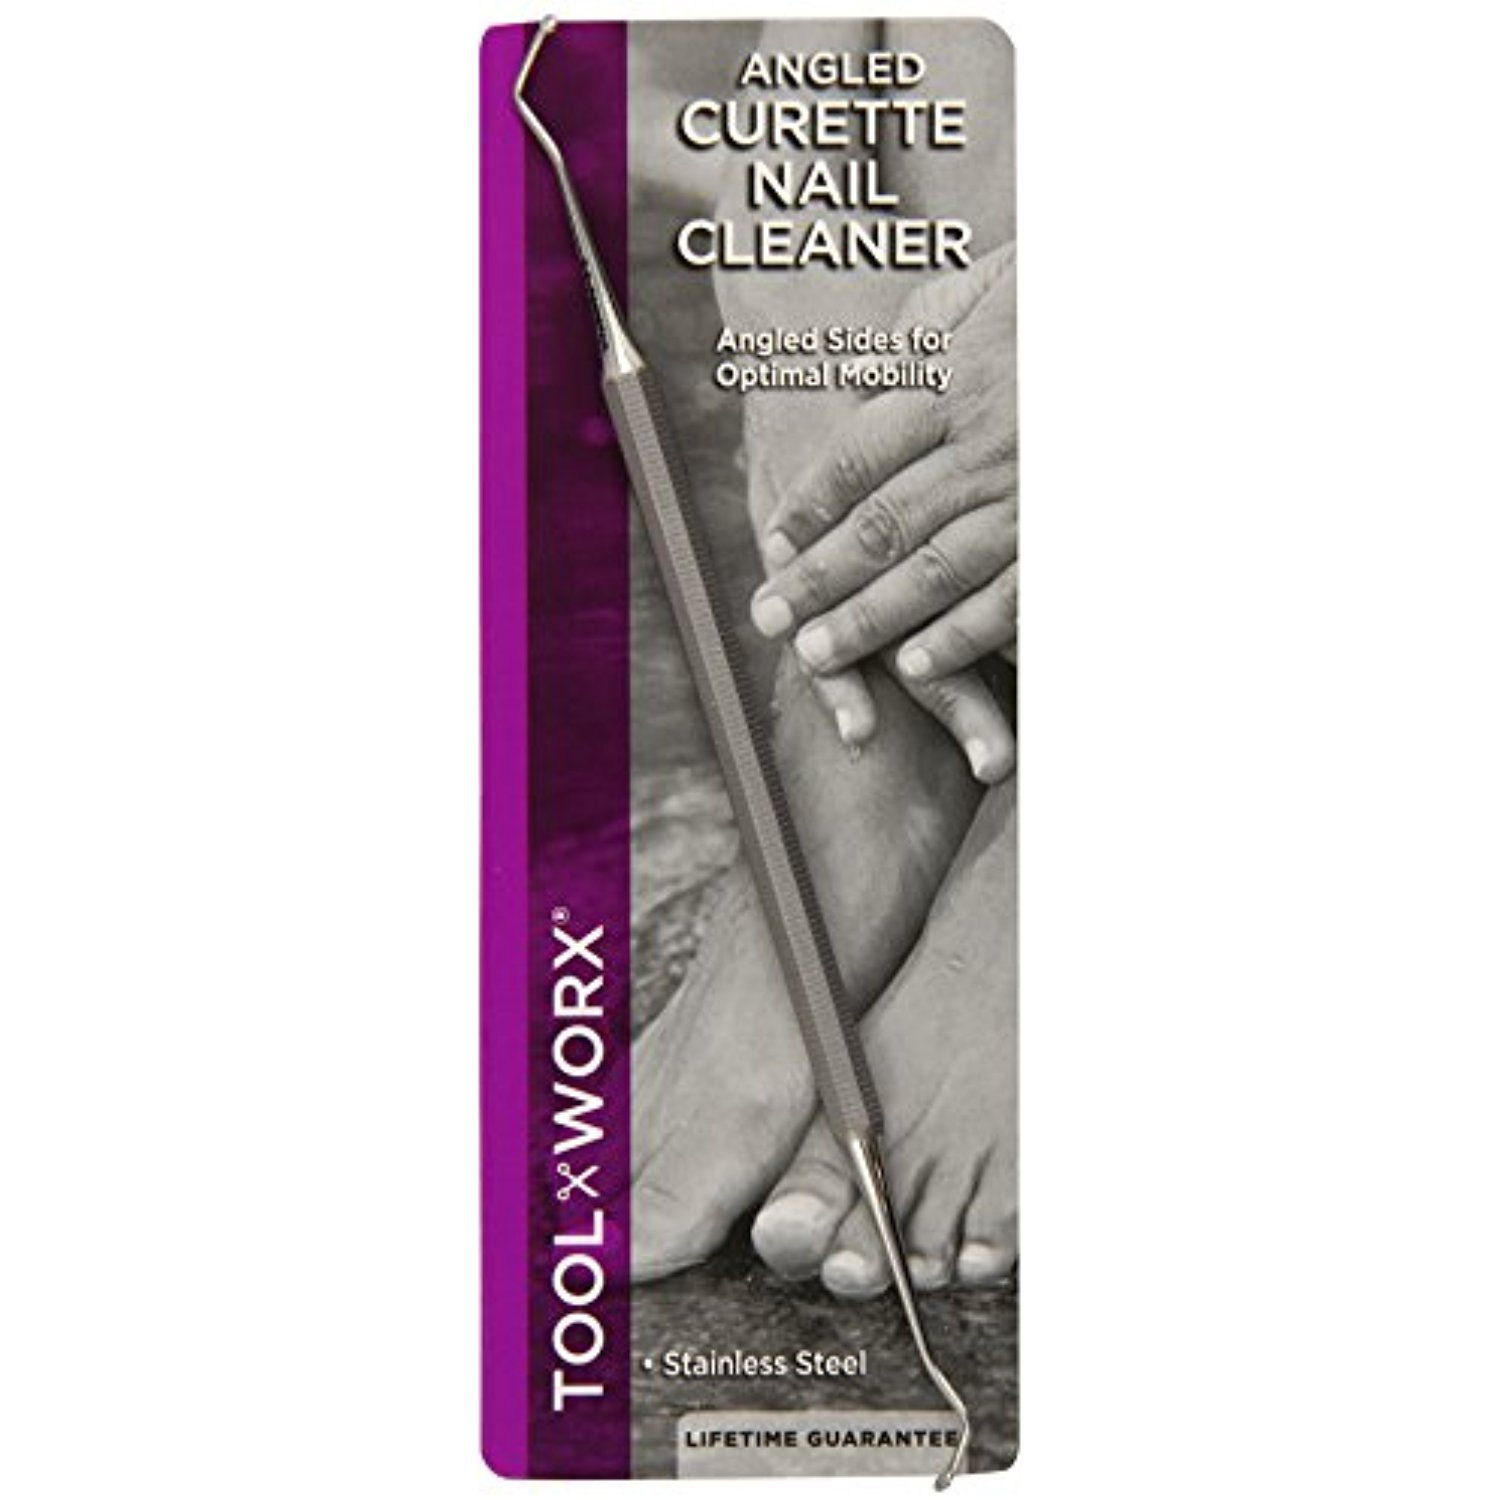 Toolworx Angled Curette Nail Cleaner >>> You can find more details ...